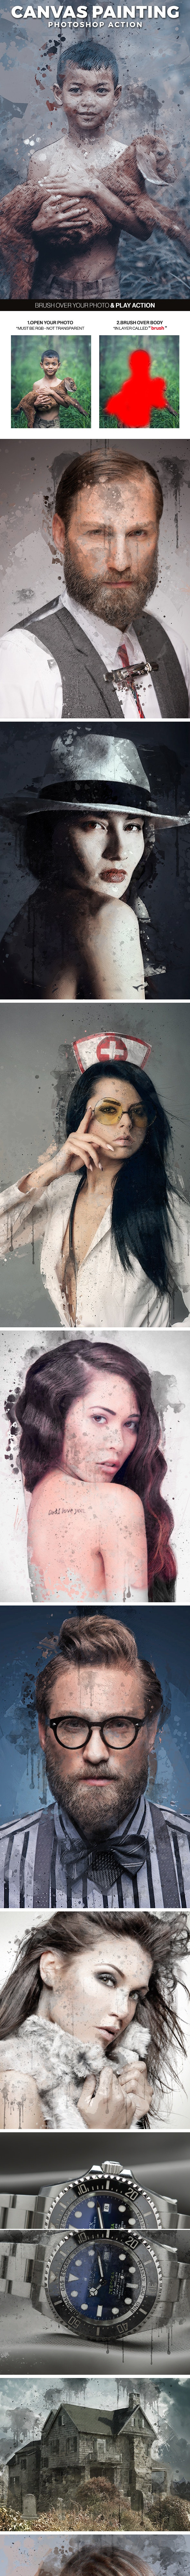 Canvas Painting Photoshop Action - Photo Effects Actions